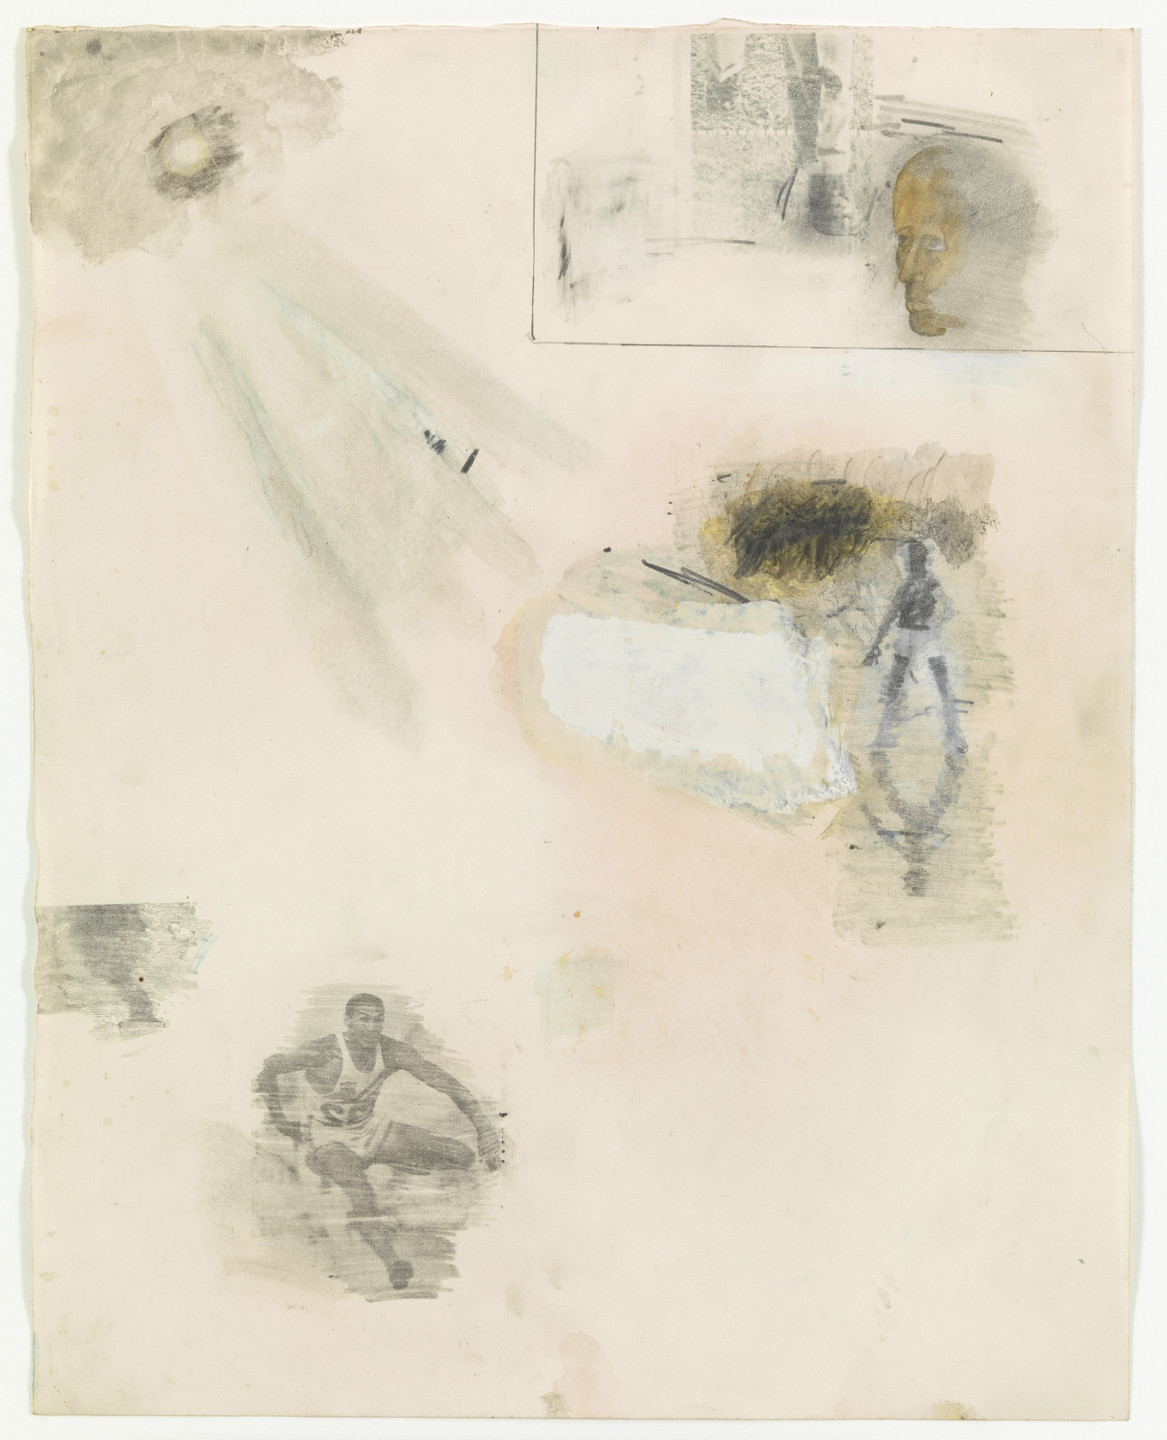 Robert Rauschenberg. Canto XV: Circle Seven, Round 3, The Violent Against Nature from the series Thirty-Four Illustrations for Dante's Inferno. (1959-60)